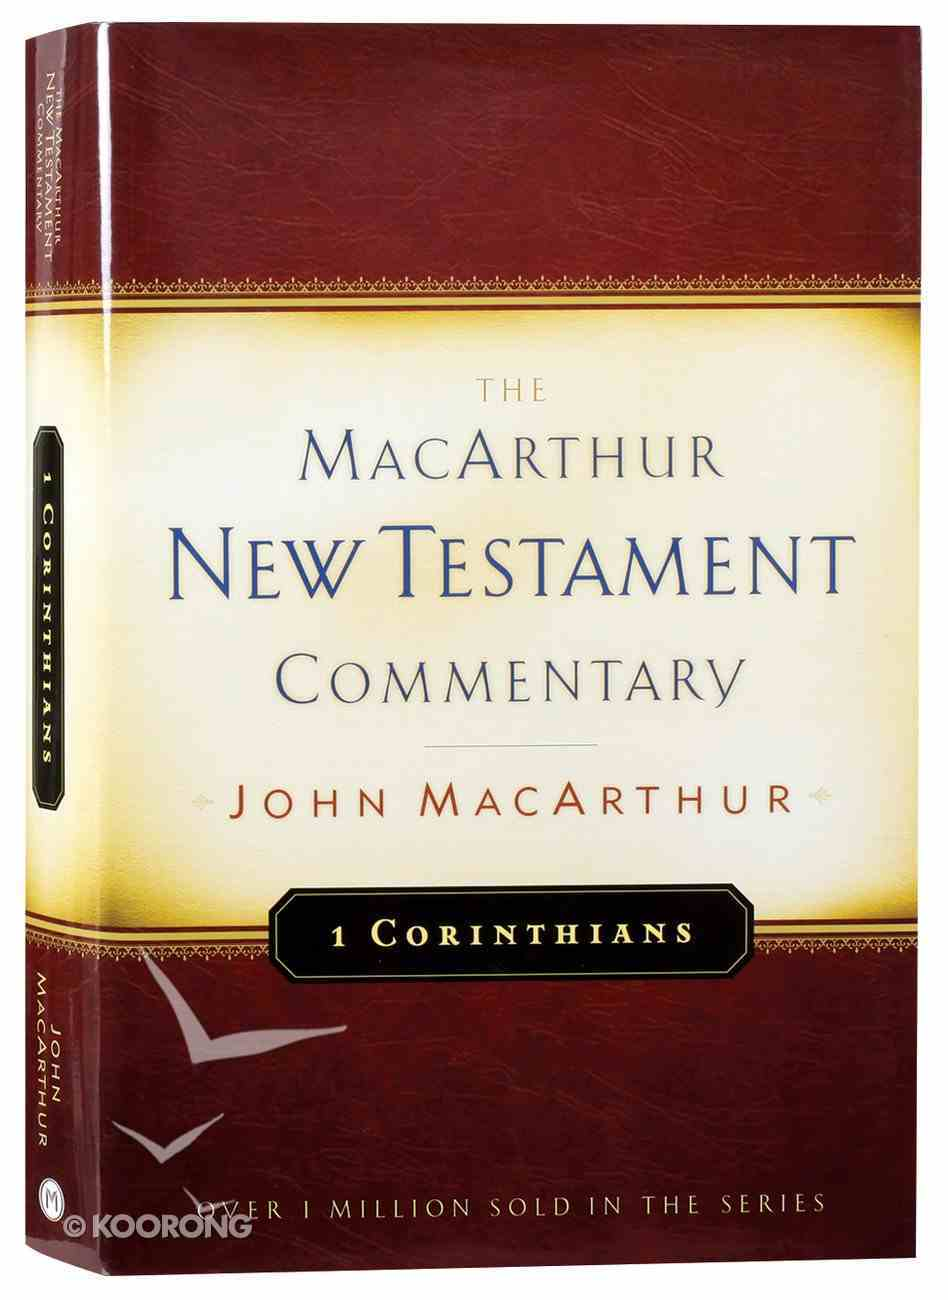 1 Corinthians (Macarthur New Testament Commentary Series) Hardback